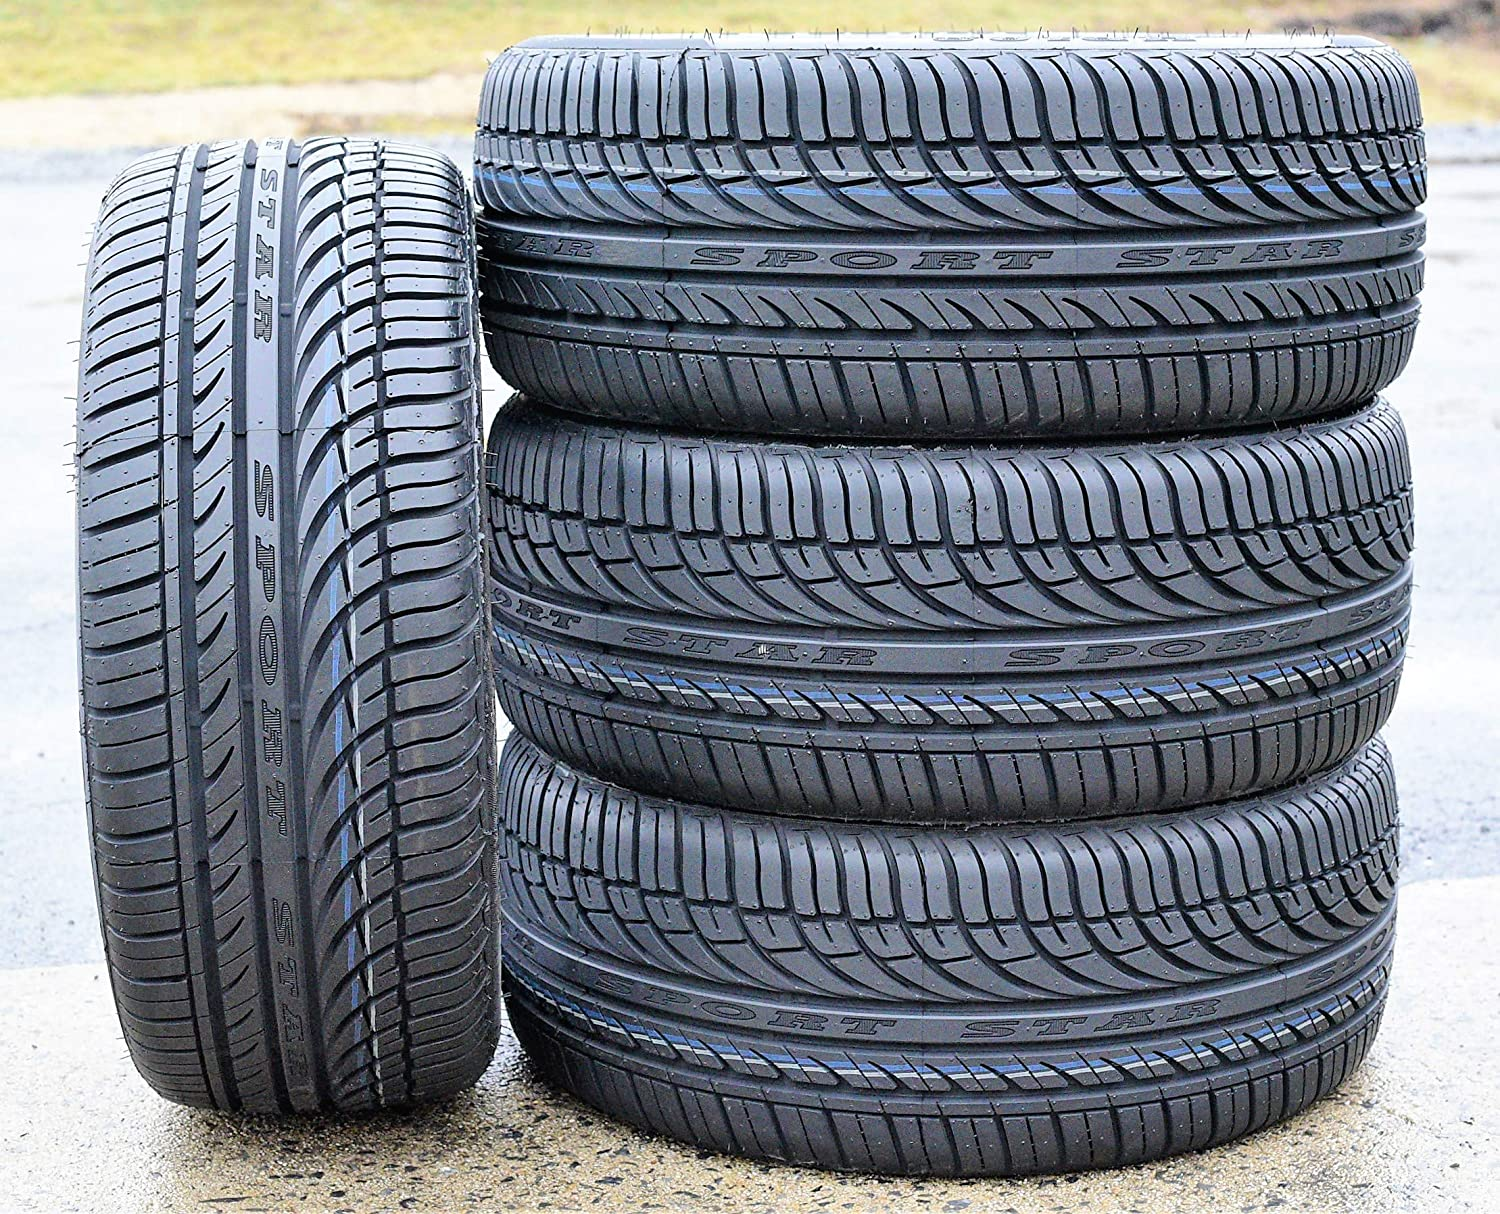 Set of 4 Fullway HP108 All-Season Performance Radial Tires-235//65R18 106H FOUR